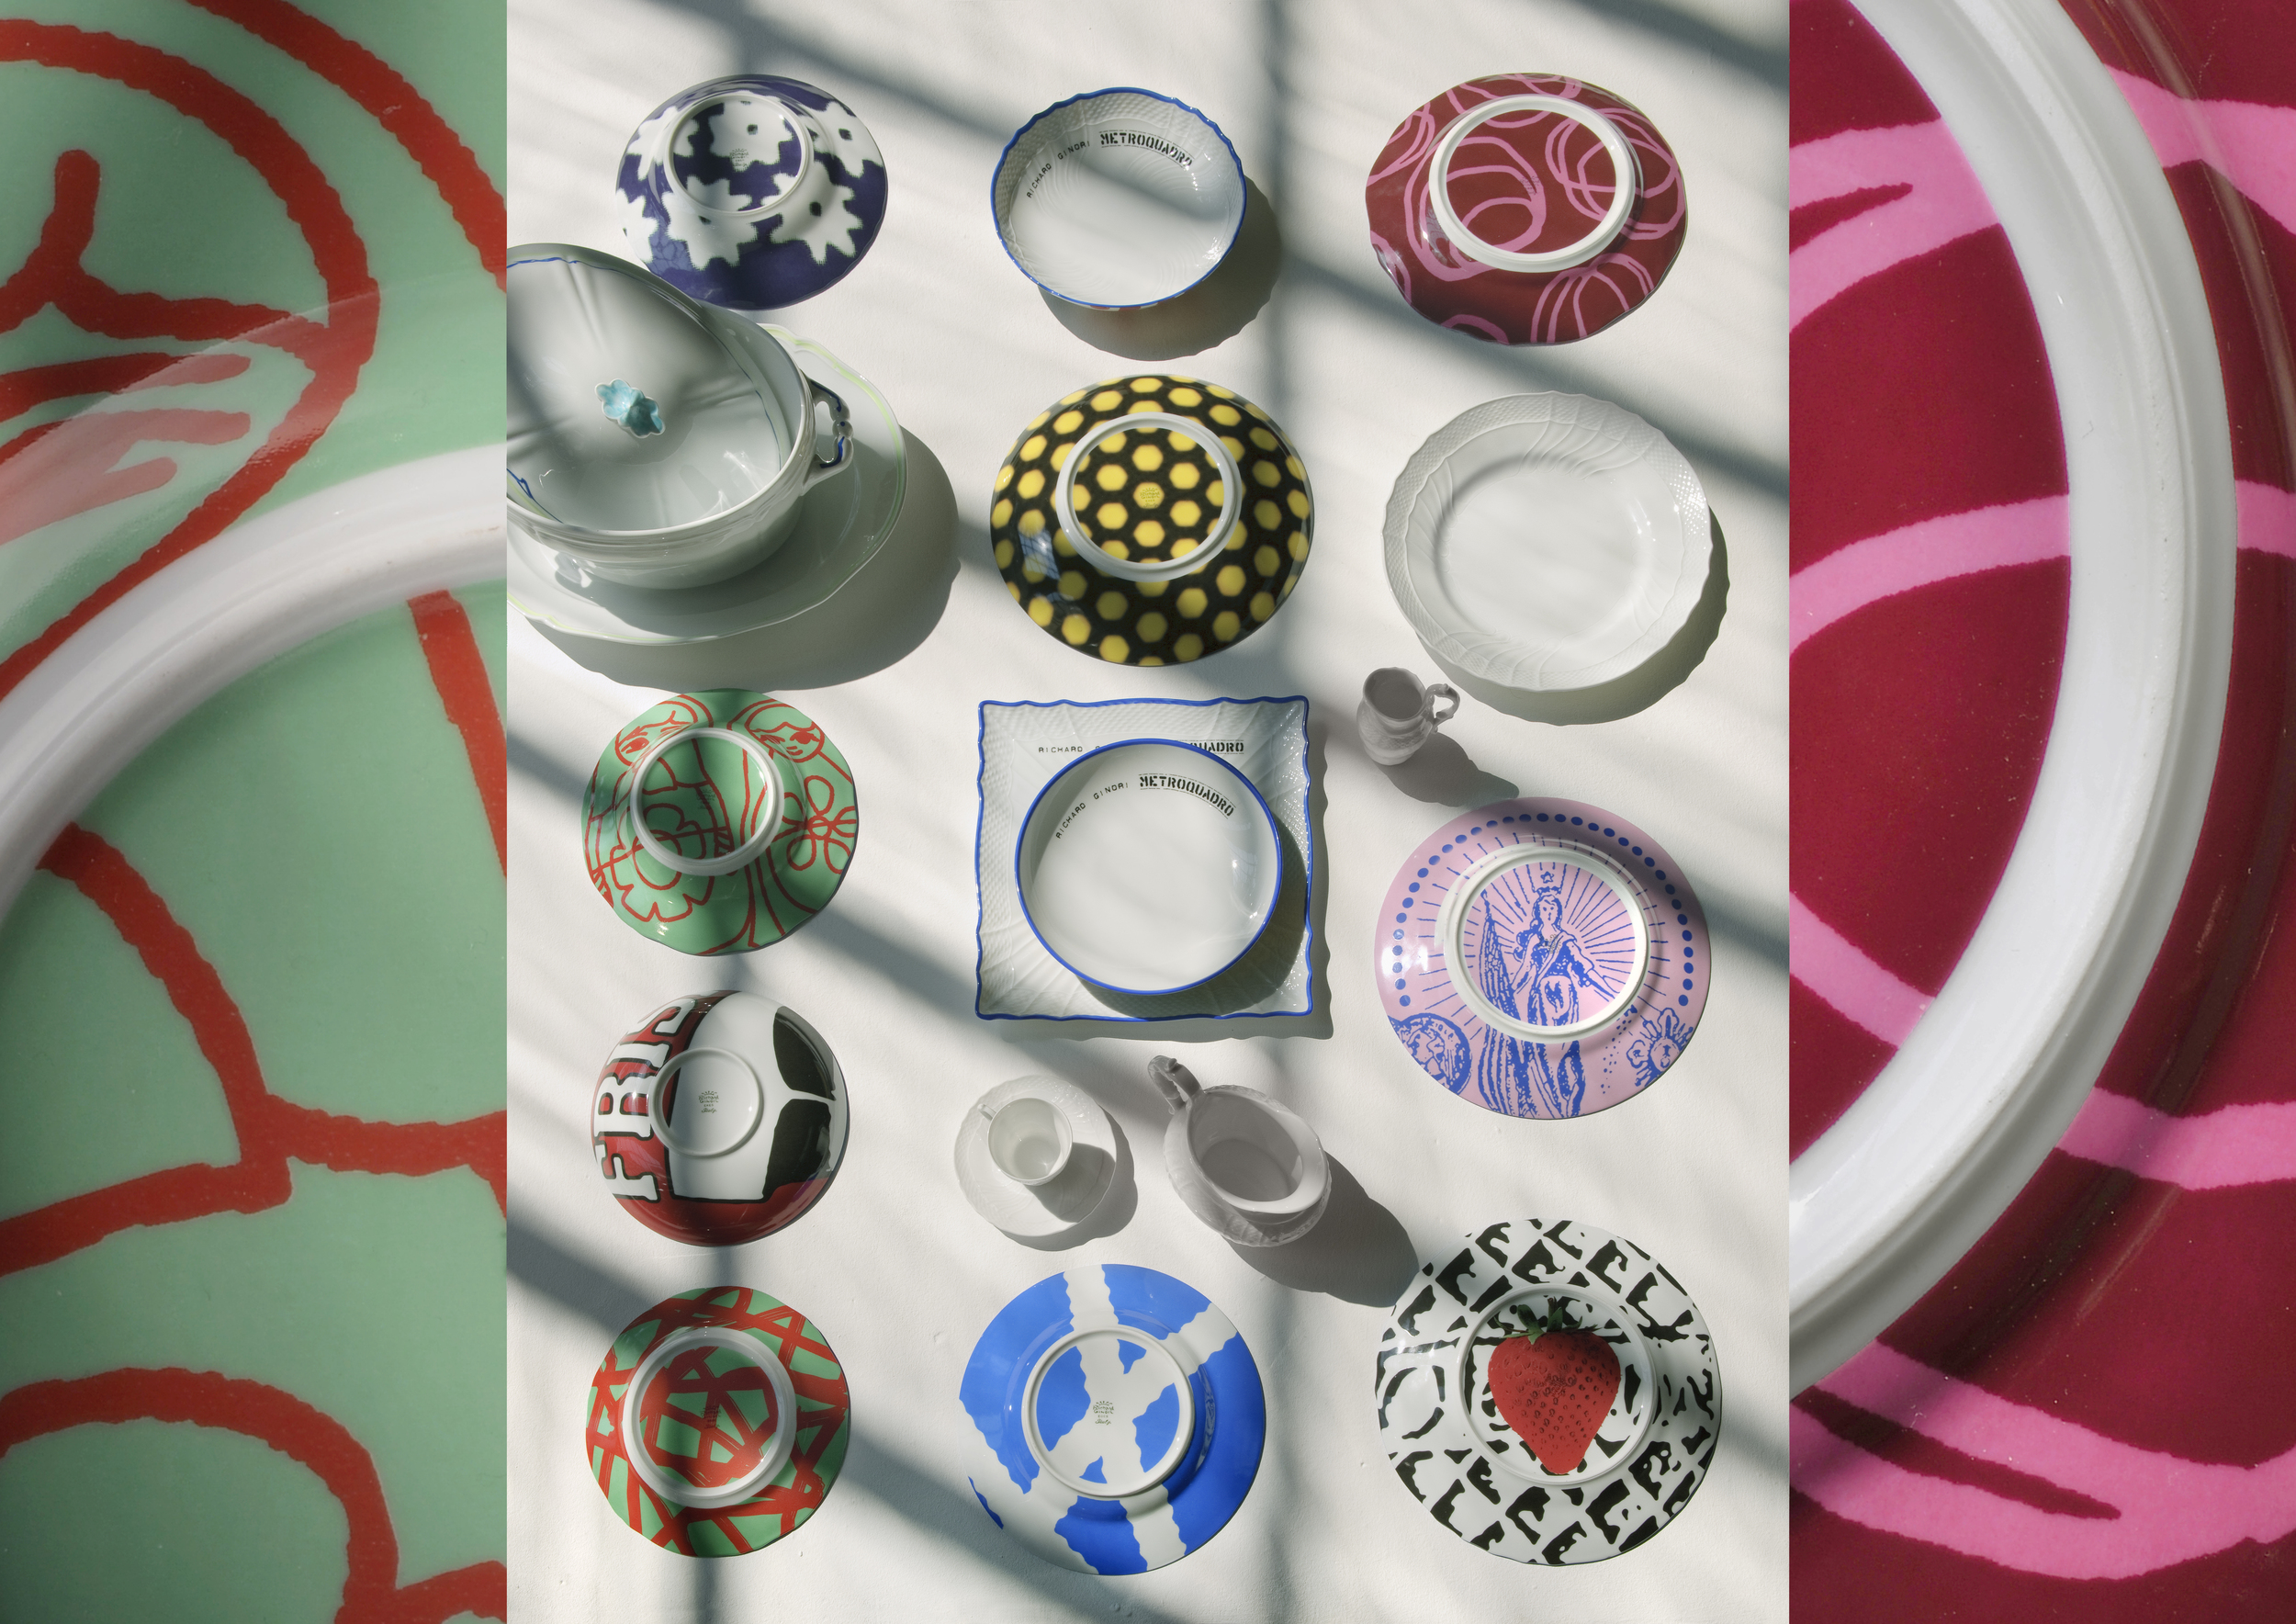 Richard Ginori's plates in collaboration with Paola Navone.